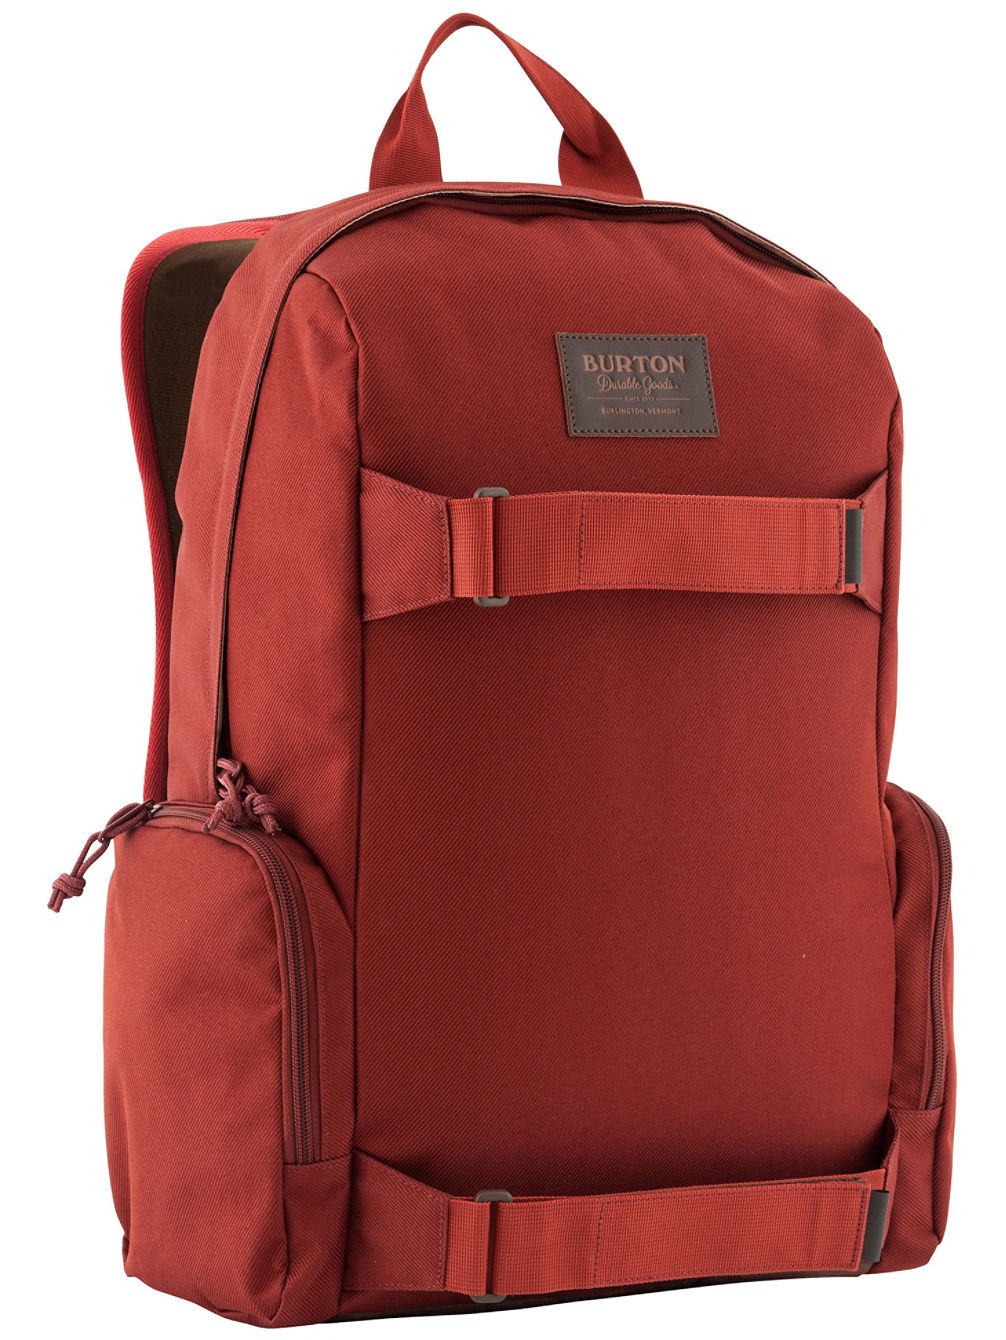 Emphasis Backpack